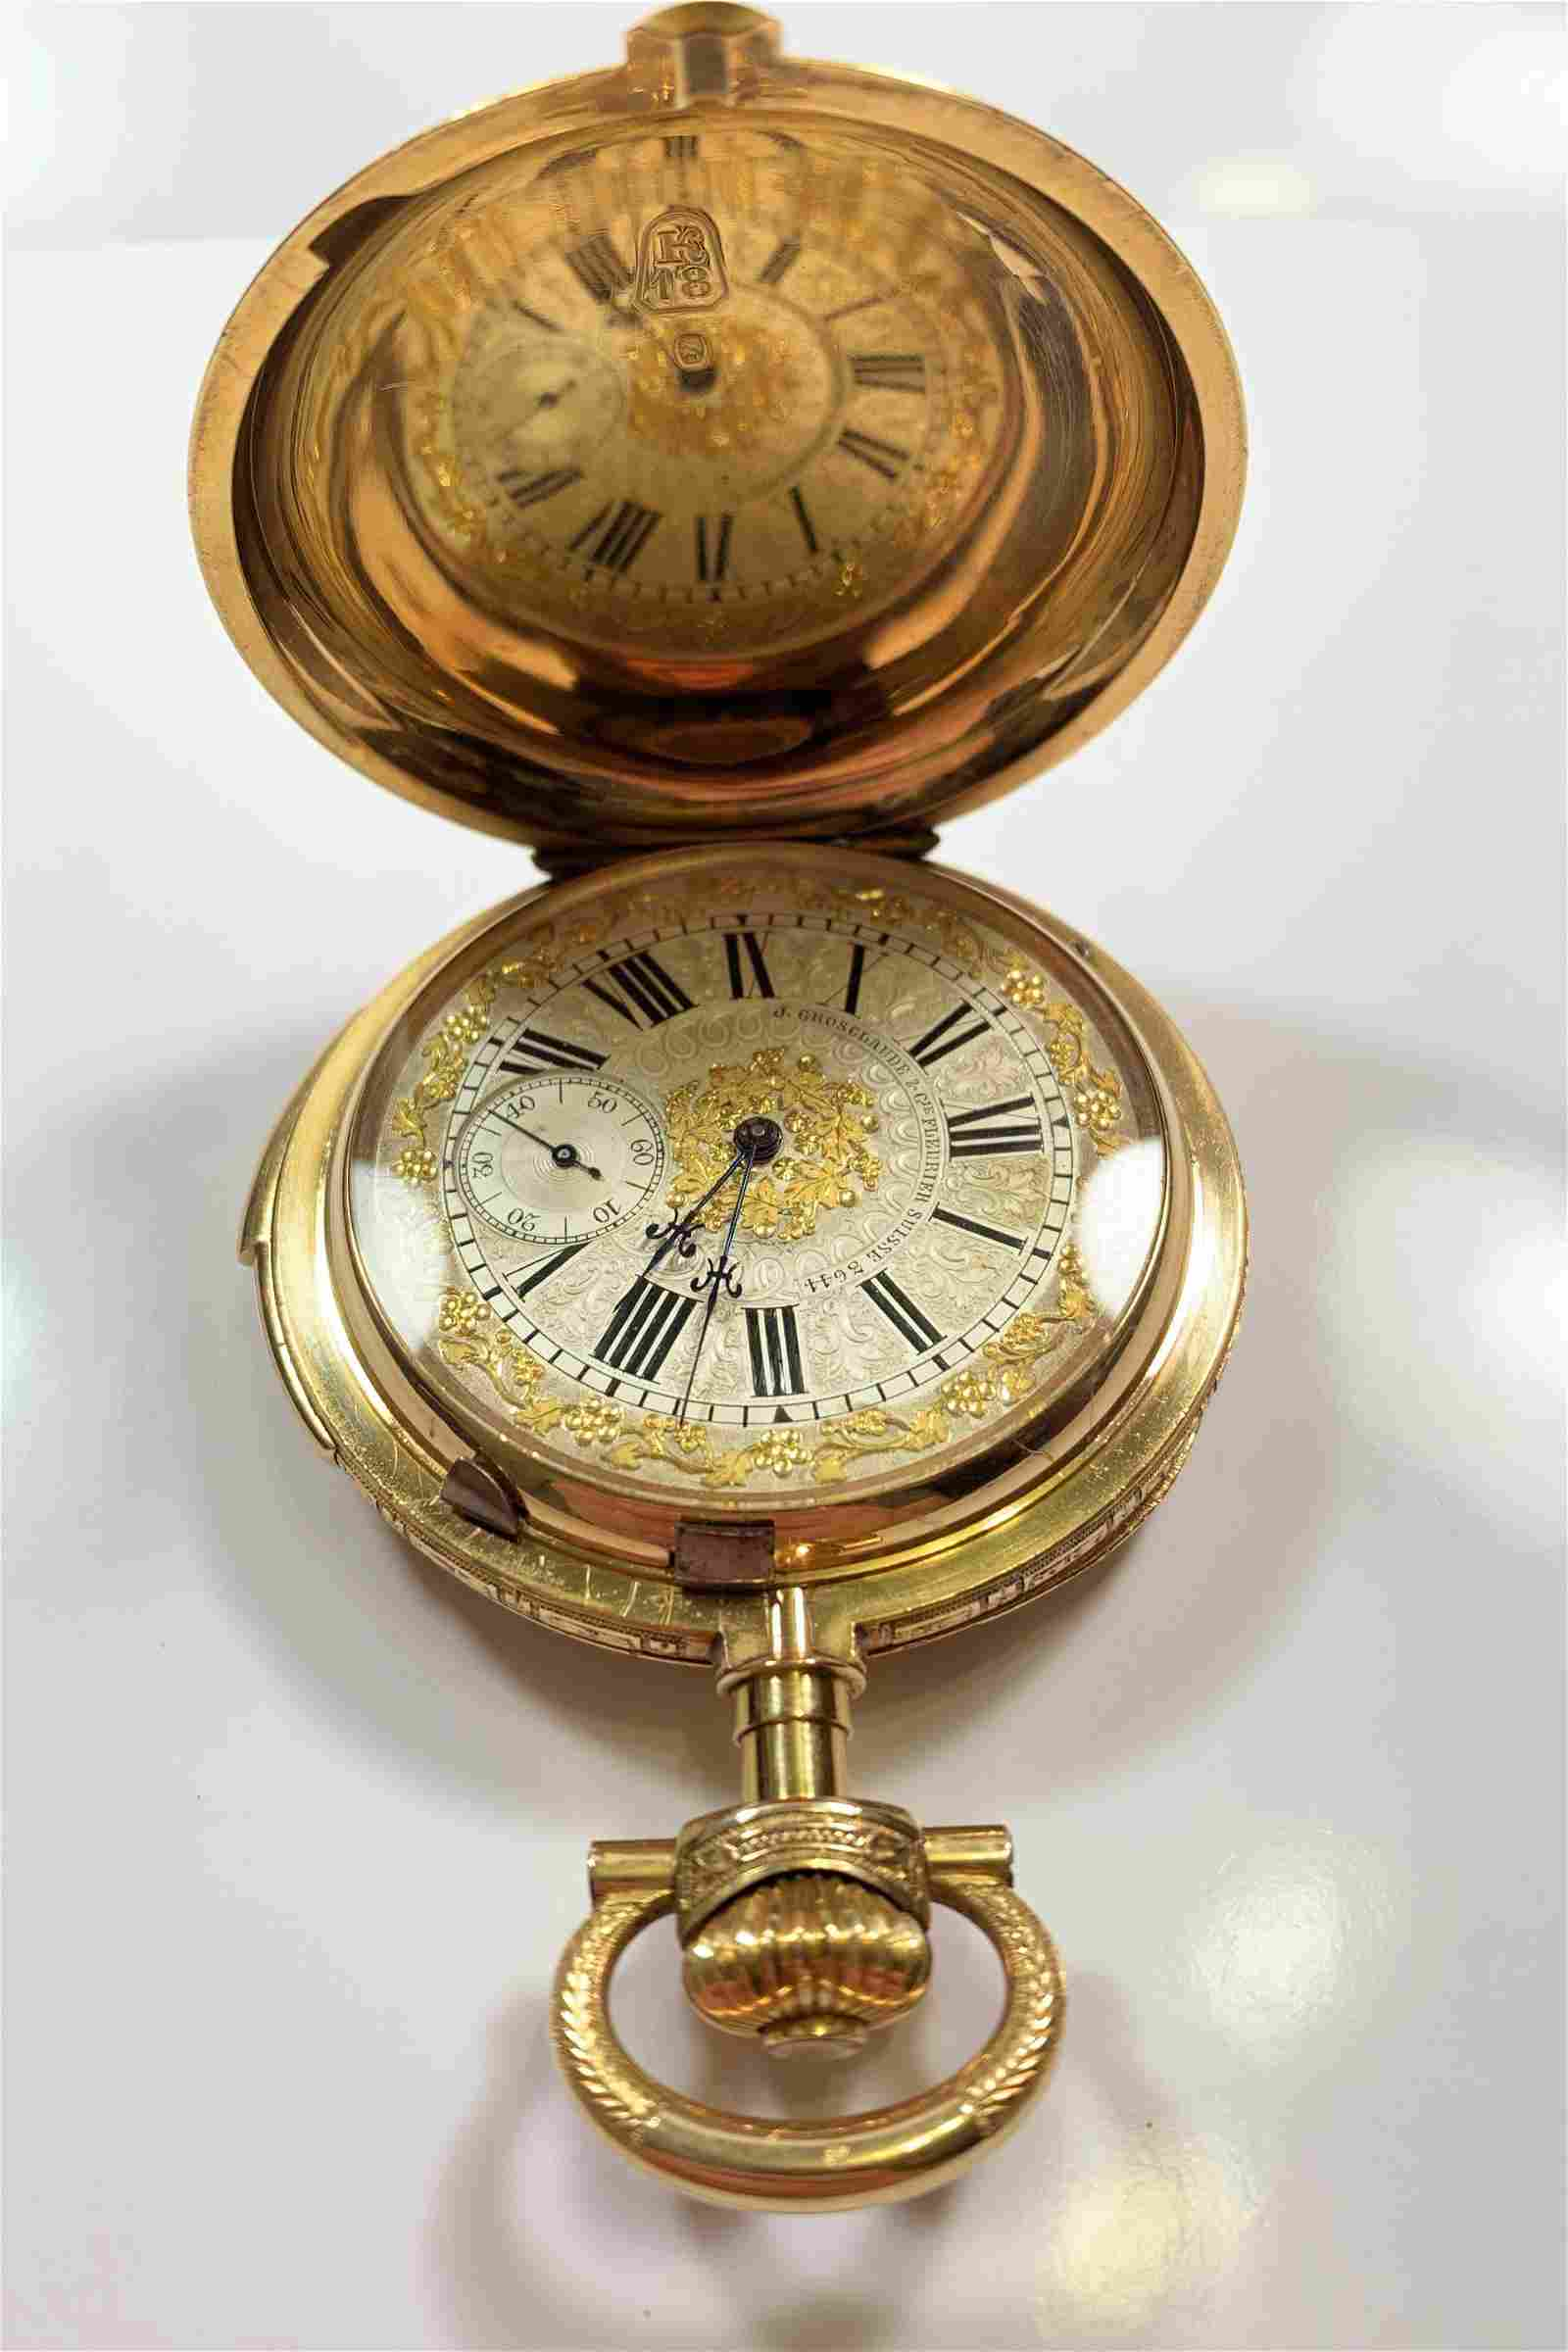 Grosclaude 18k Gold Minute Repeater Pocket Watch